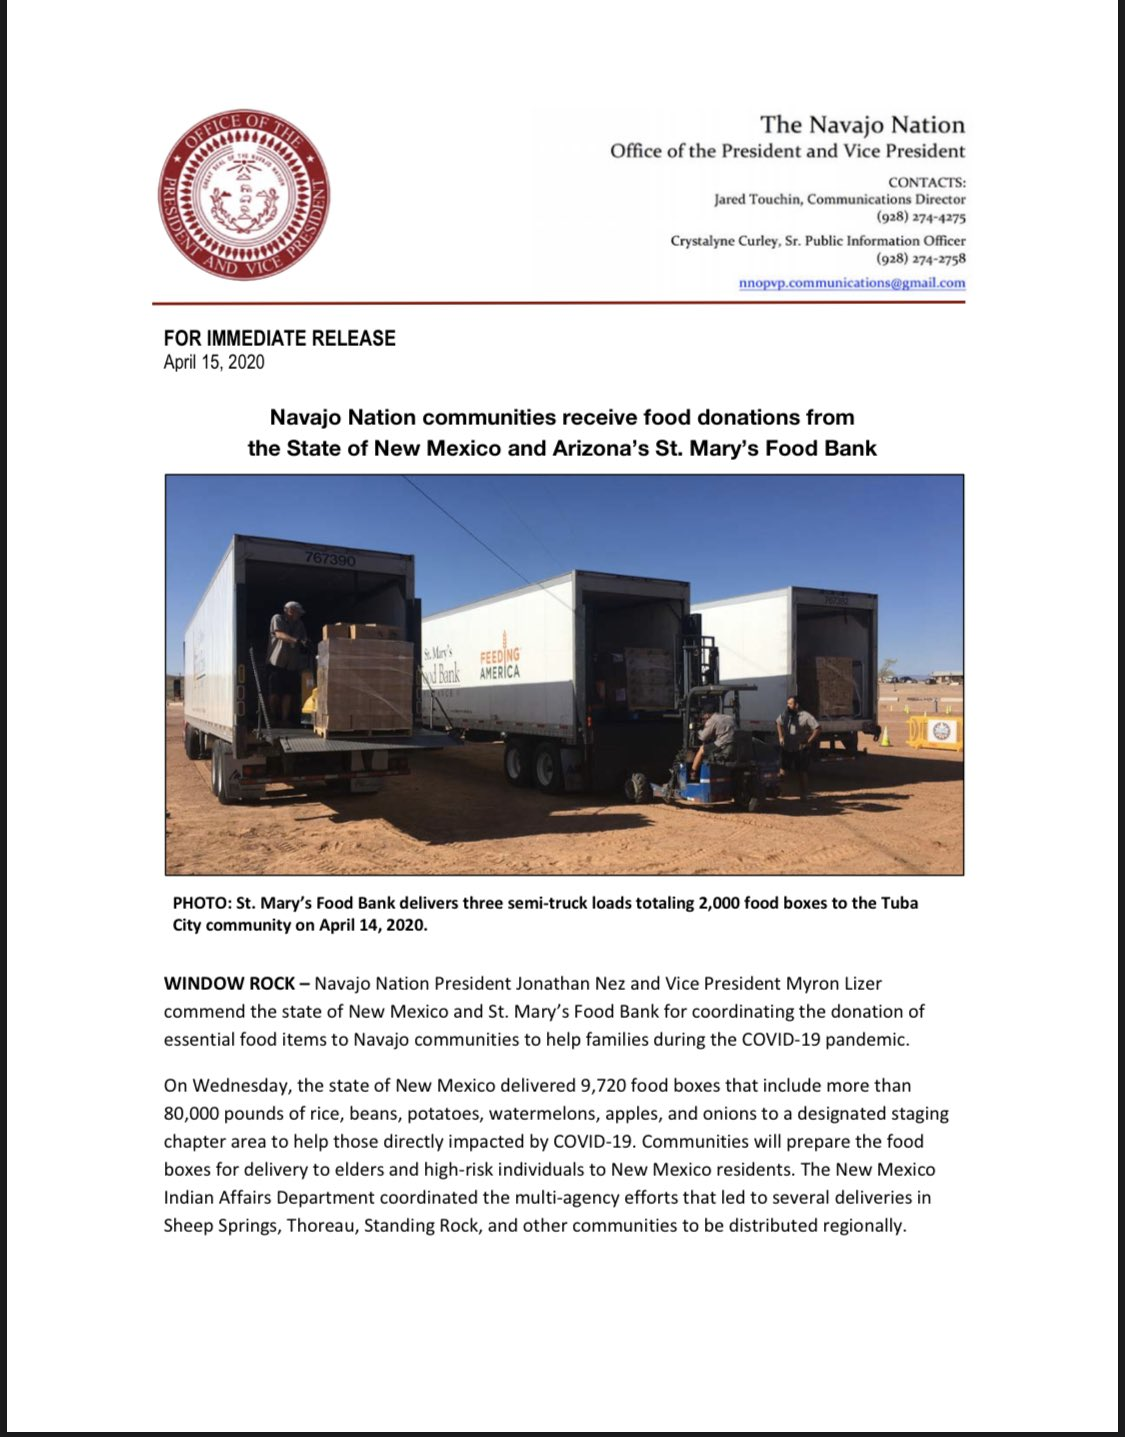 Navajo Nation President Jonathan Nez On Twitter Navajo Nation Communities Receive Food Donations From The State Of New Mexico Govmlg And Arizona S St Mary S Food Bank Stmarysfoodbank Ahe Hee Https T Co Jb0ktstnqk